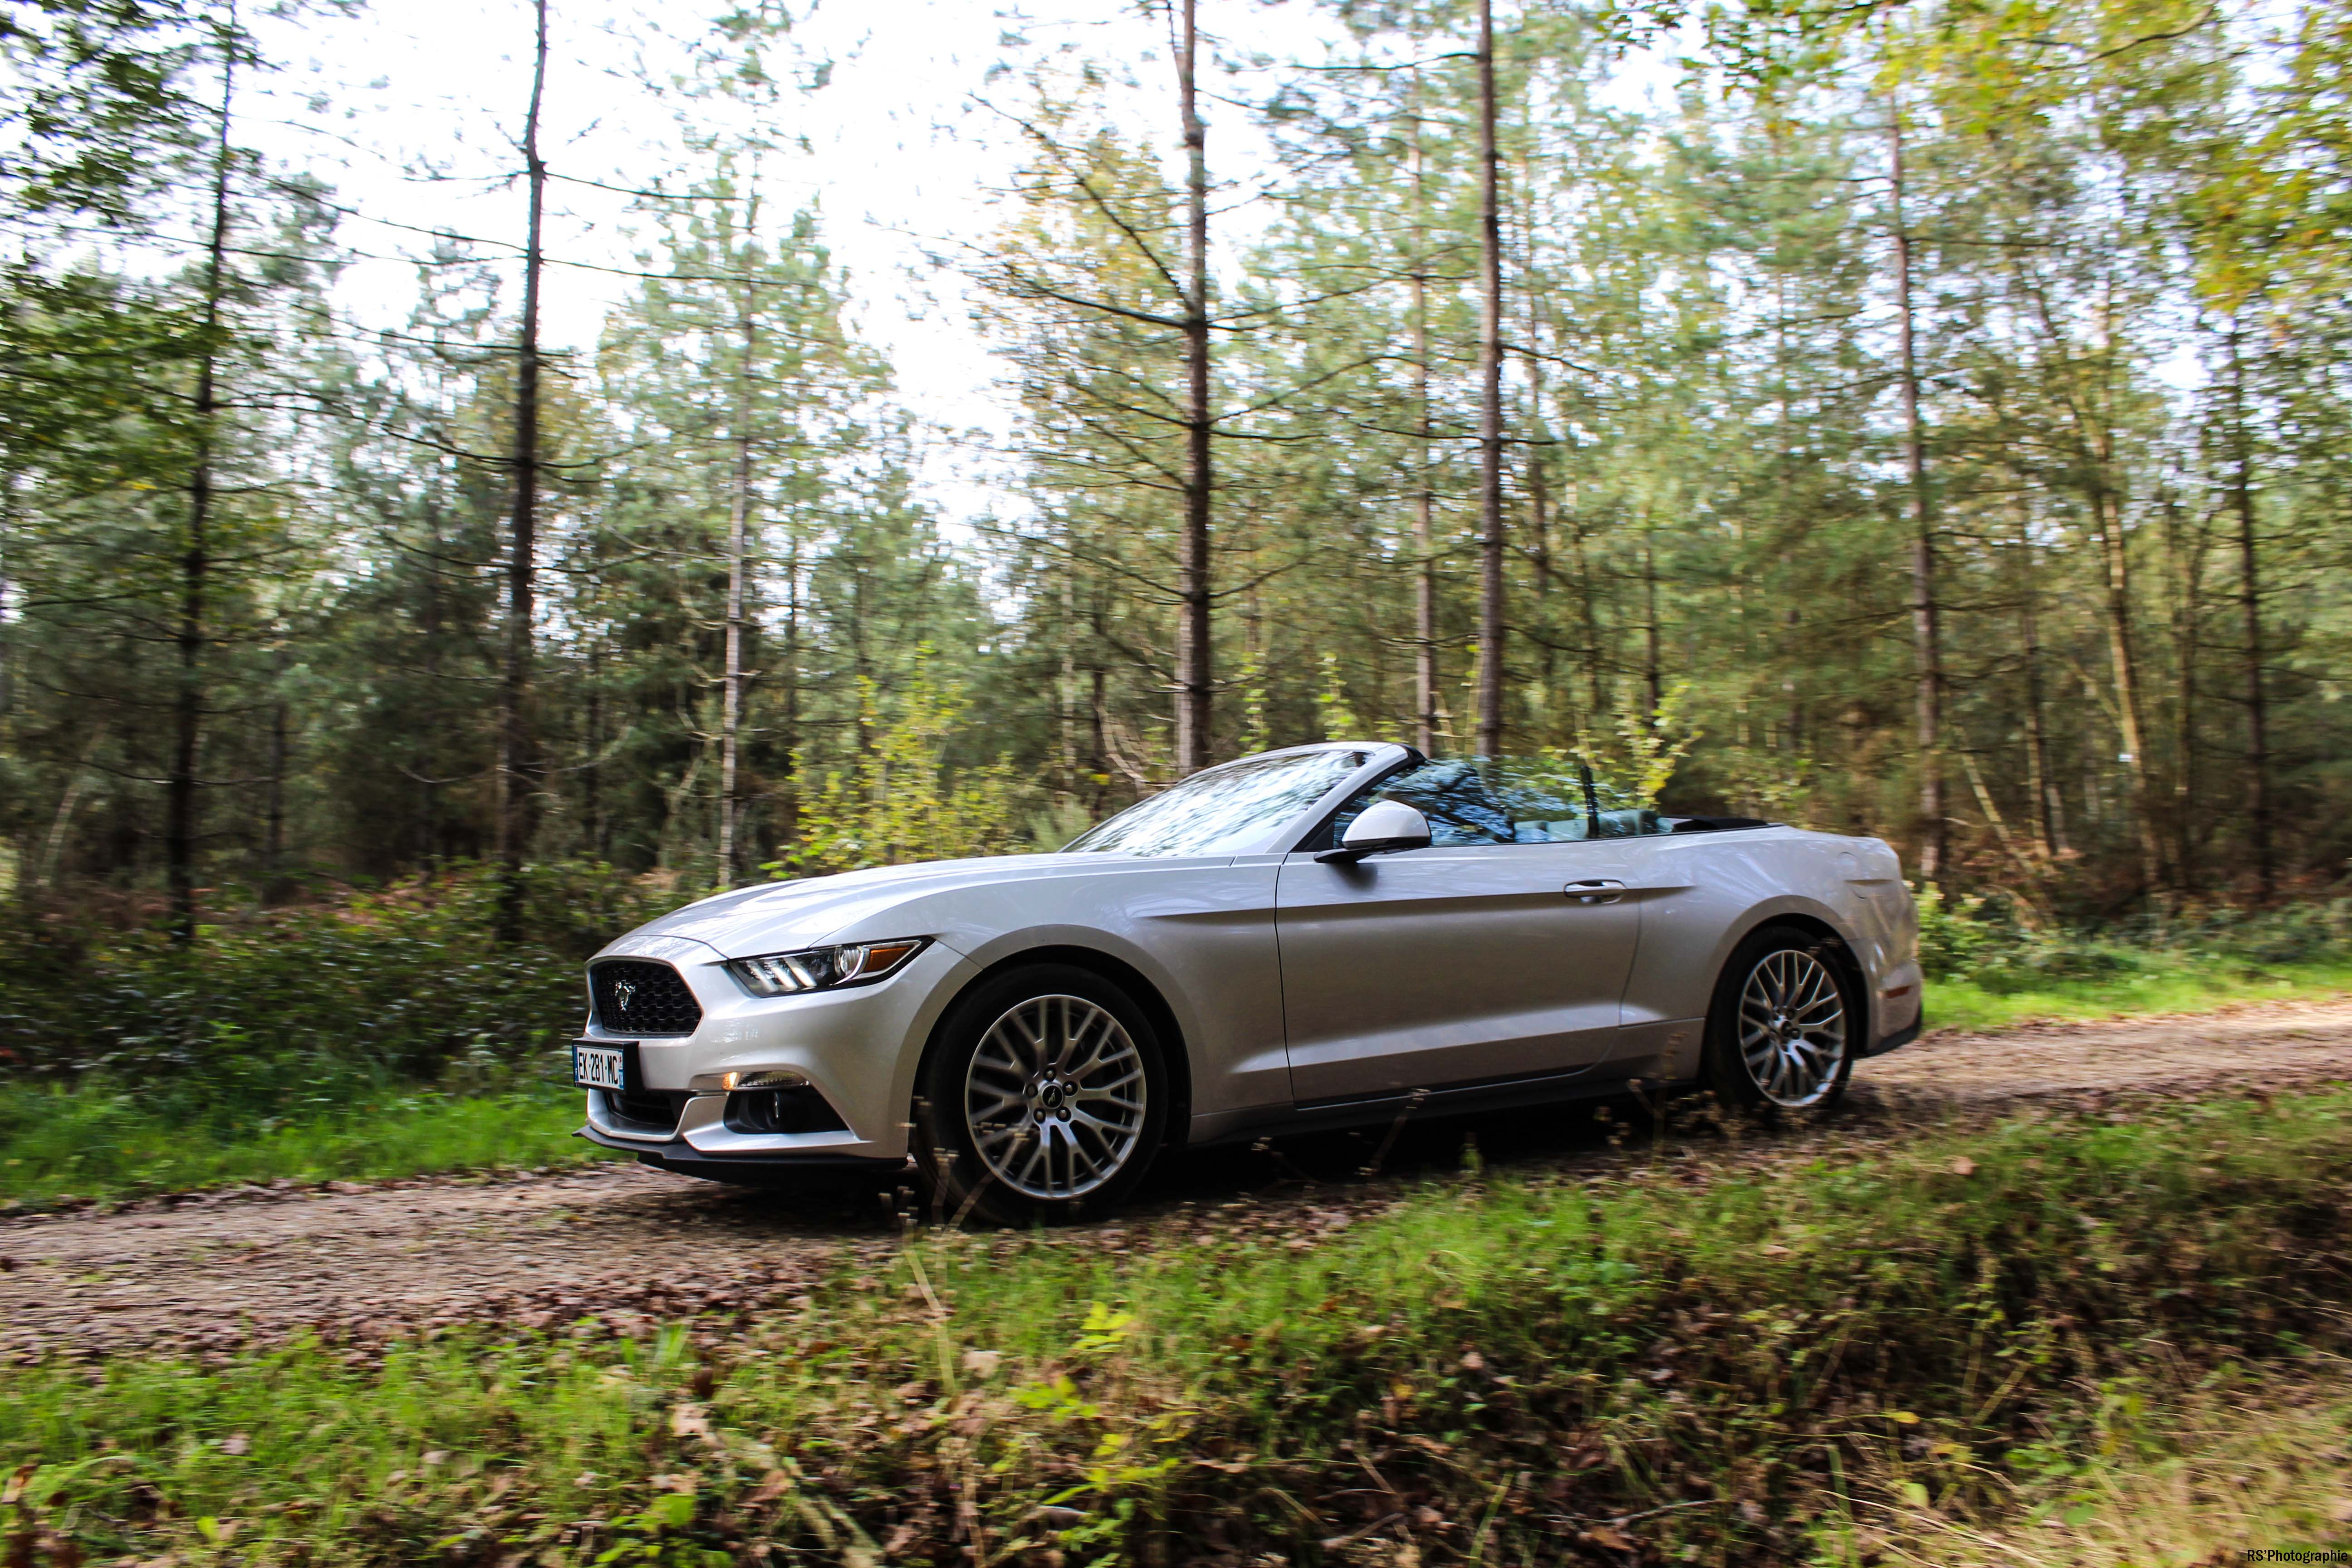 fordmustangeconvertible58-ford-mustang-convertible-ecoboost-avant-front-Arnaud Demasier-RSPhotographie